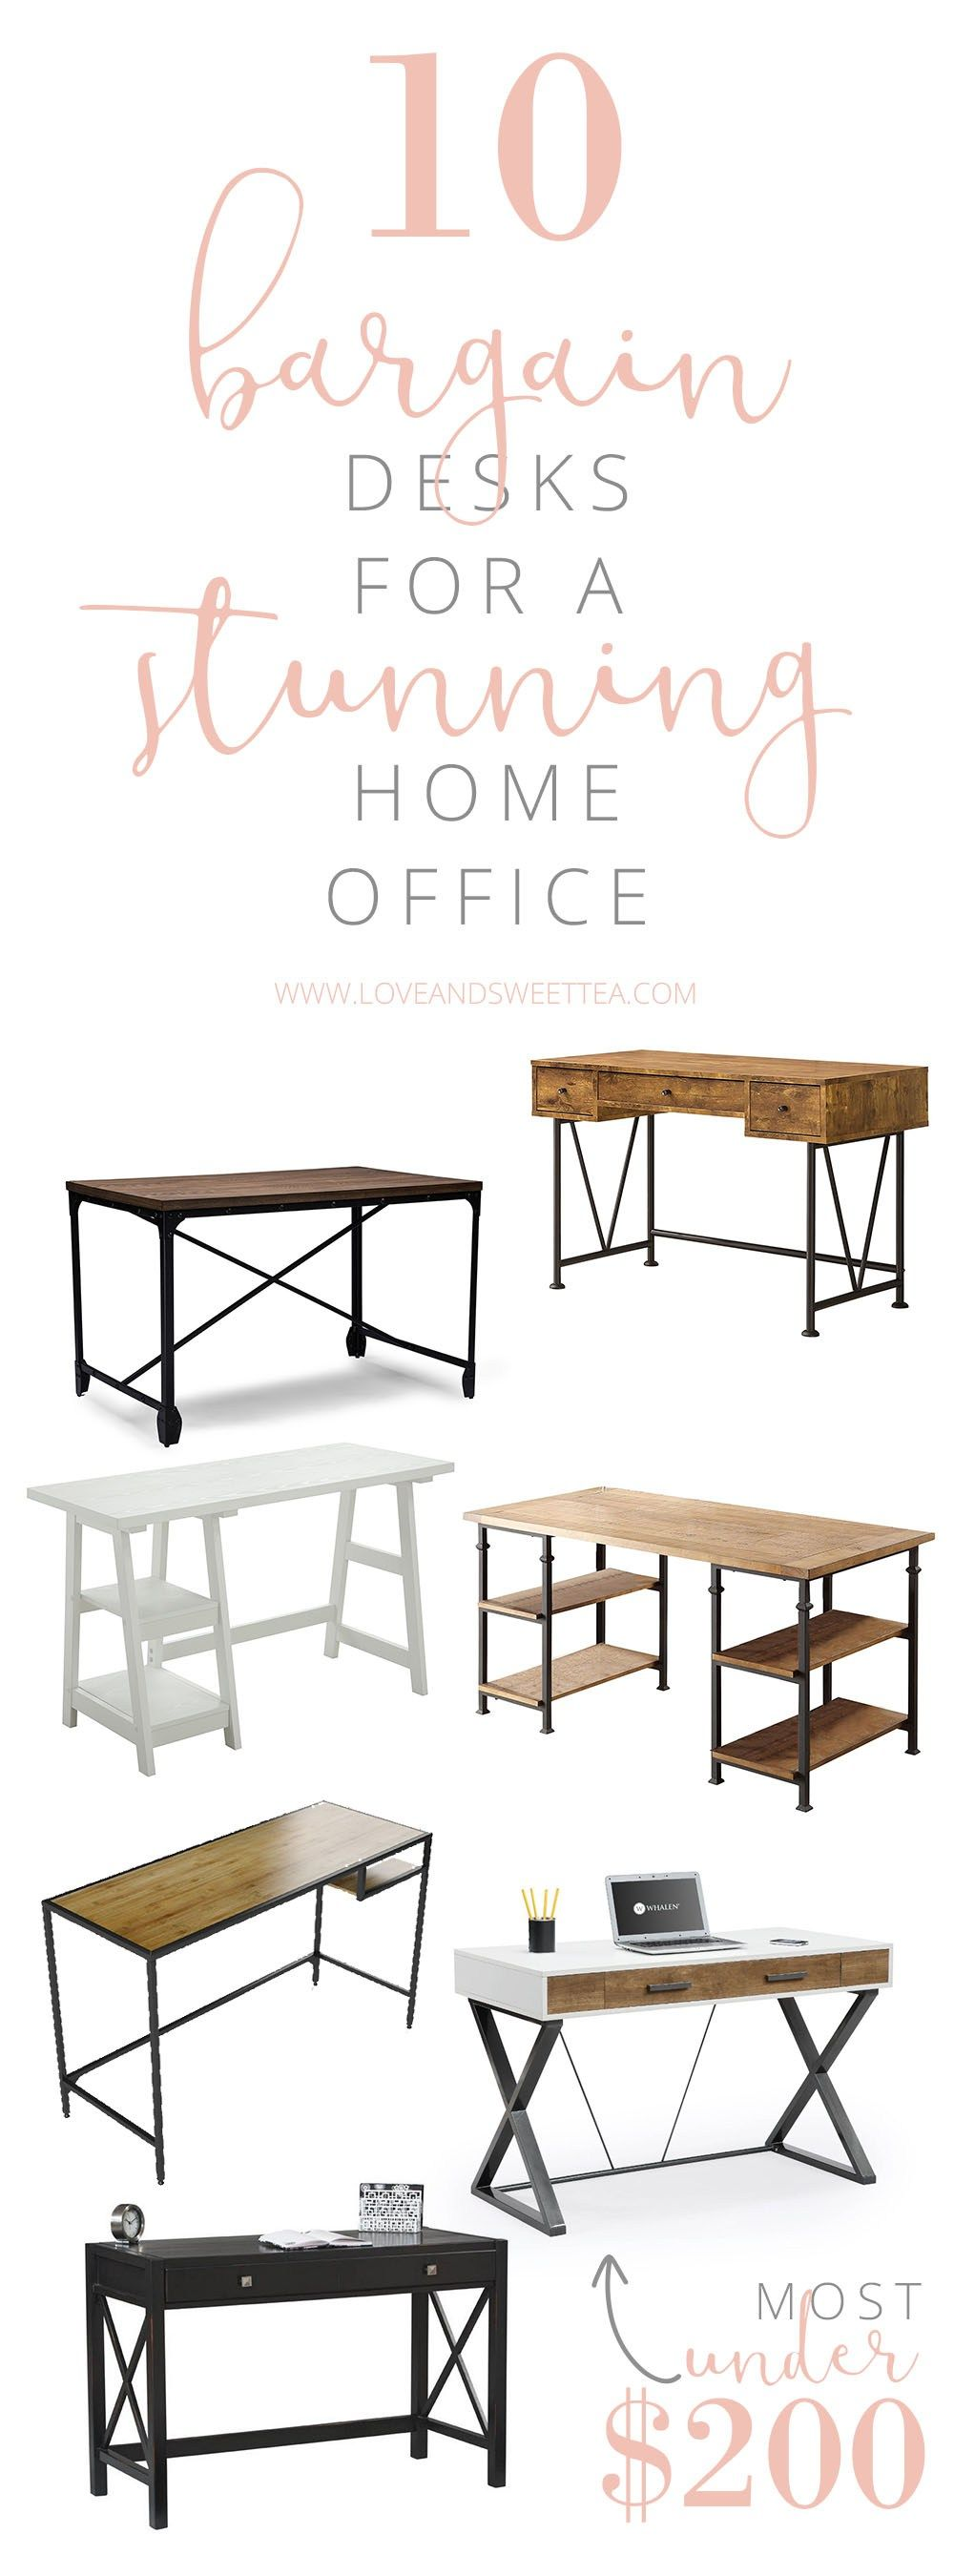 Phenomenal 10 Bargain Desk Ideas For A Stunning Home Office Home Download Free Architecture Designs Scobabritishbridgeorg